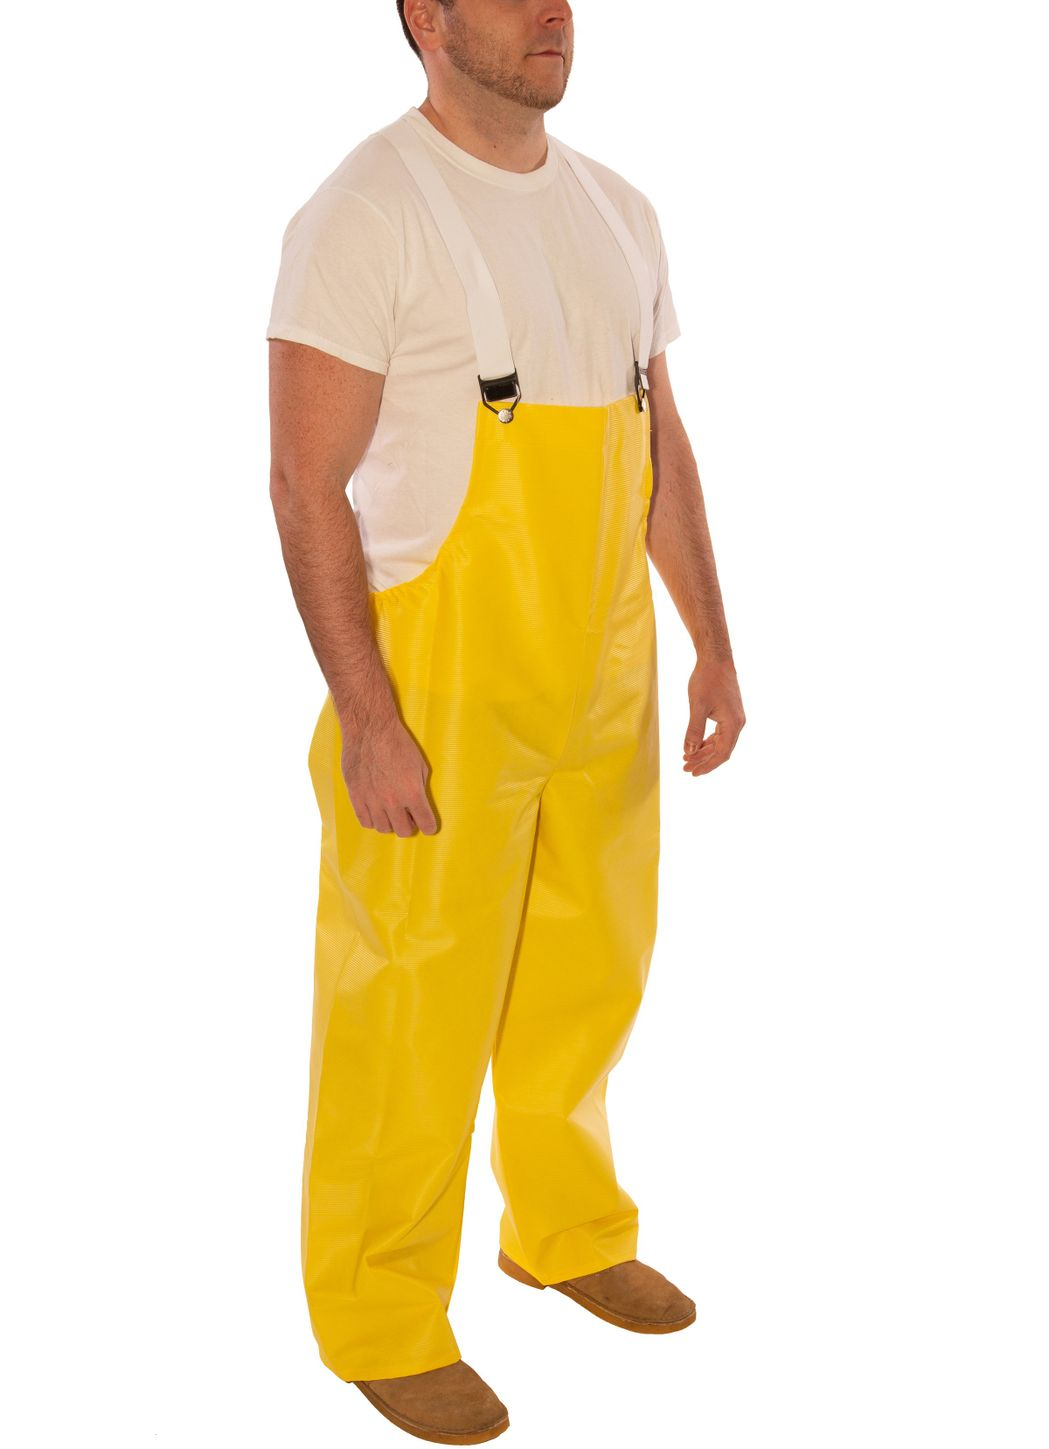 tingley-o31007-webdri-chemical-resistant-overalls-pvc-coated-tear-resistant-plain-front-side.jpg